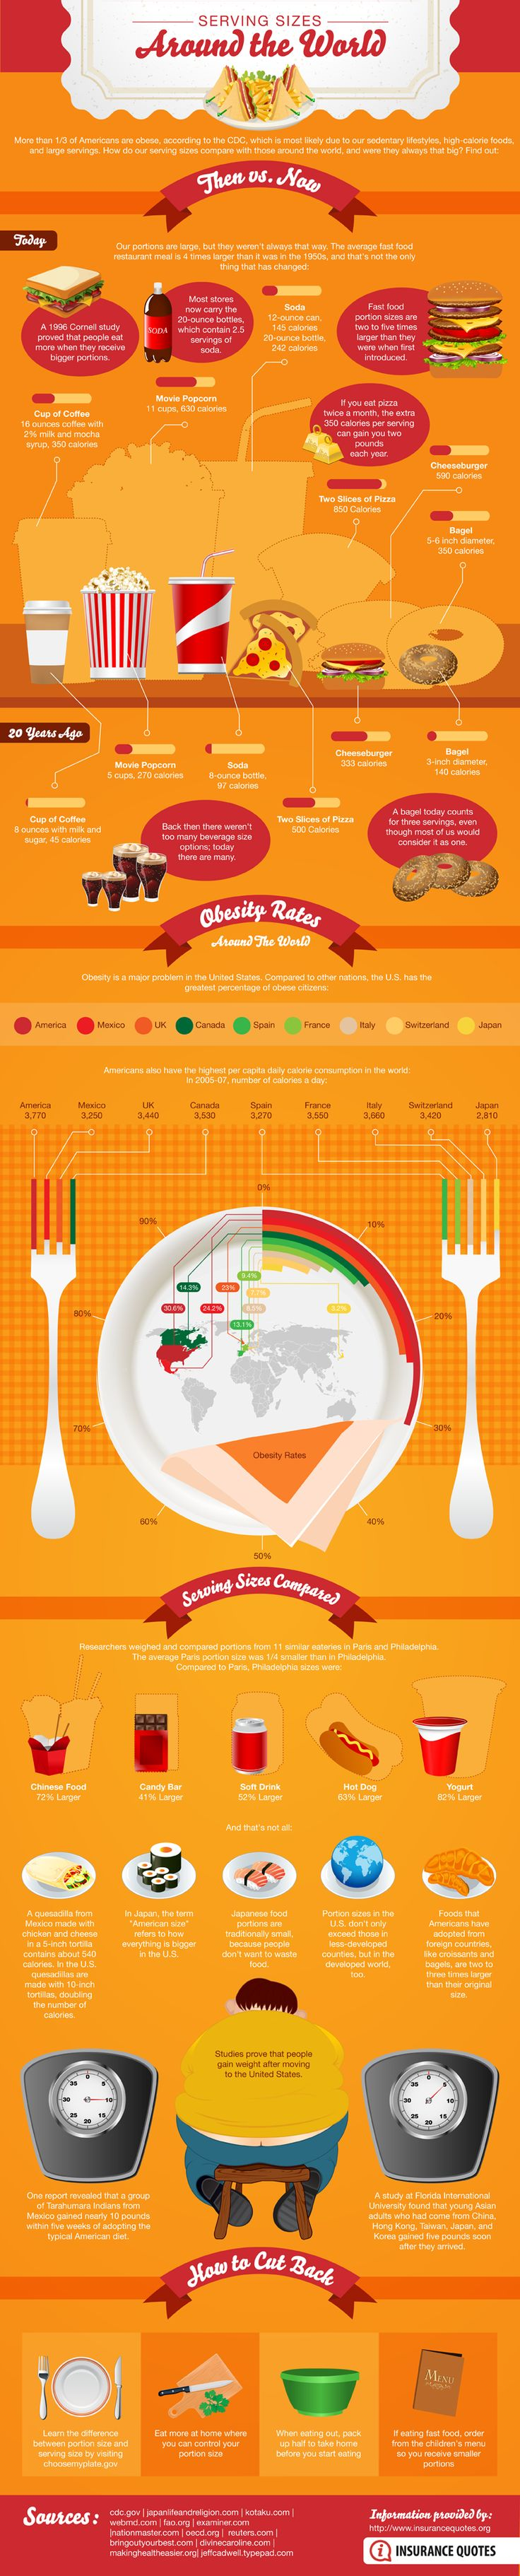 Cool infographic about how serving sizes have changed over the years & around the world: Serving Sizes, Info Graphic, Around The Worlds, Food Infographic, Portion Sizes, Fast Food, Health, Food Portion, Infographics